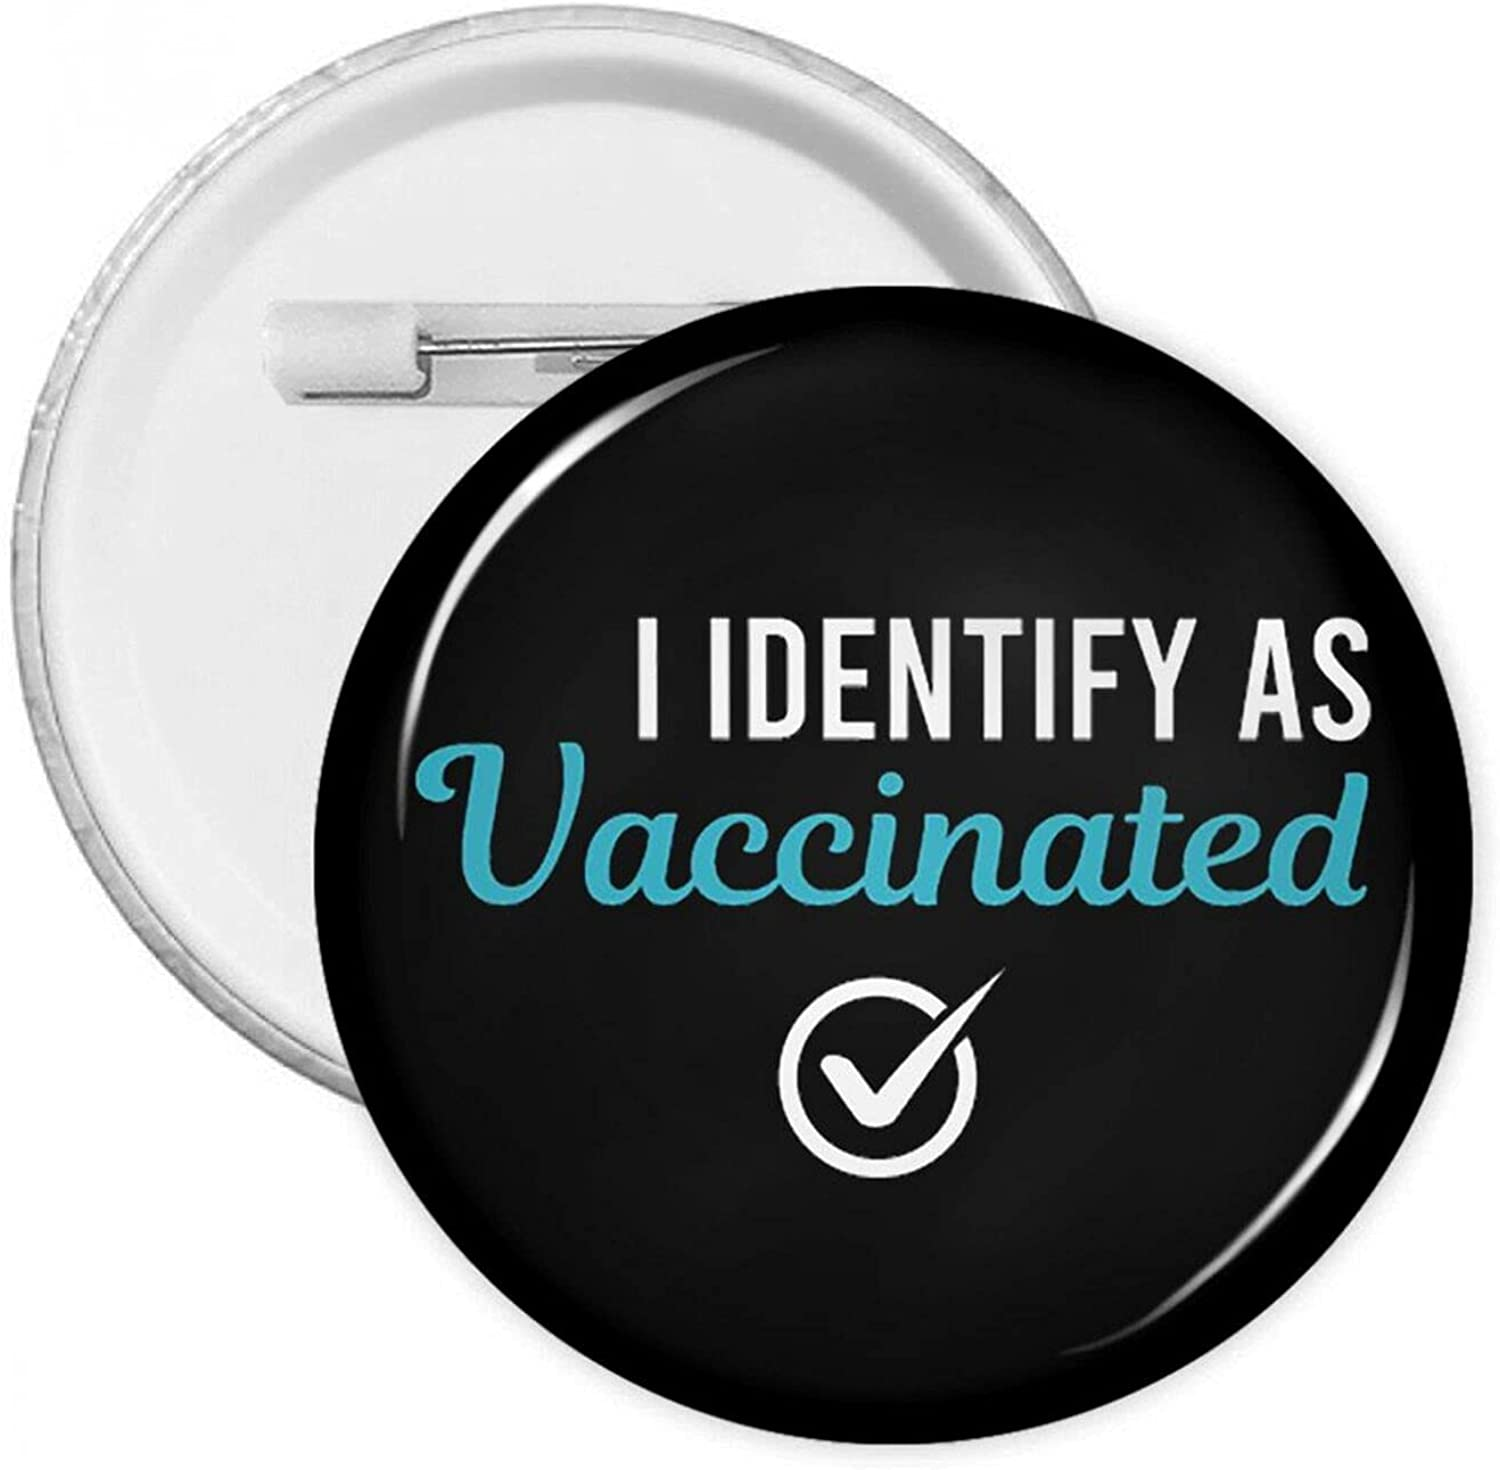 Fully Vaccinated Shirt 2021 Pin Button Badge Recognition Party Decoration